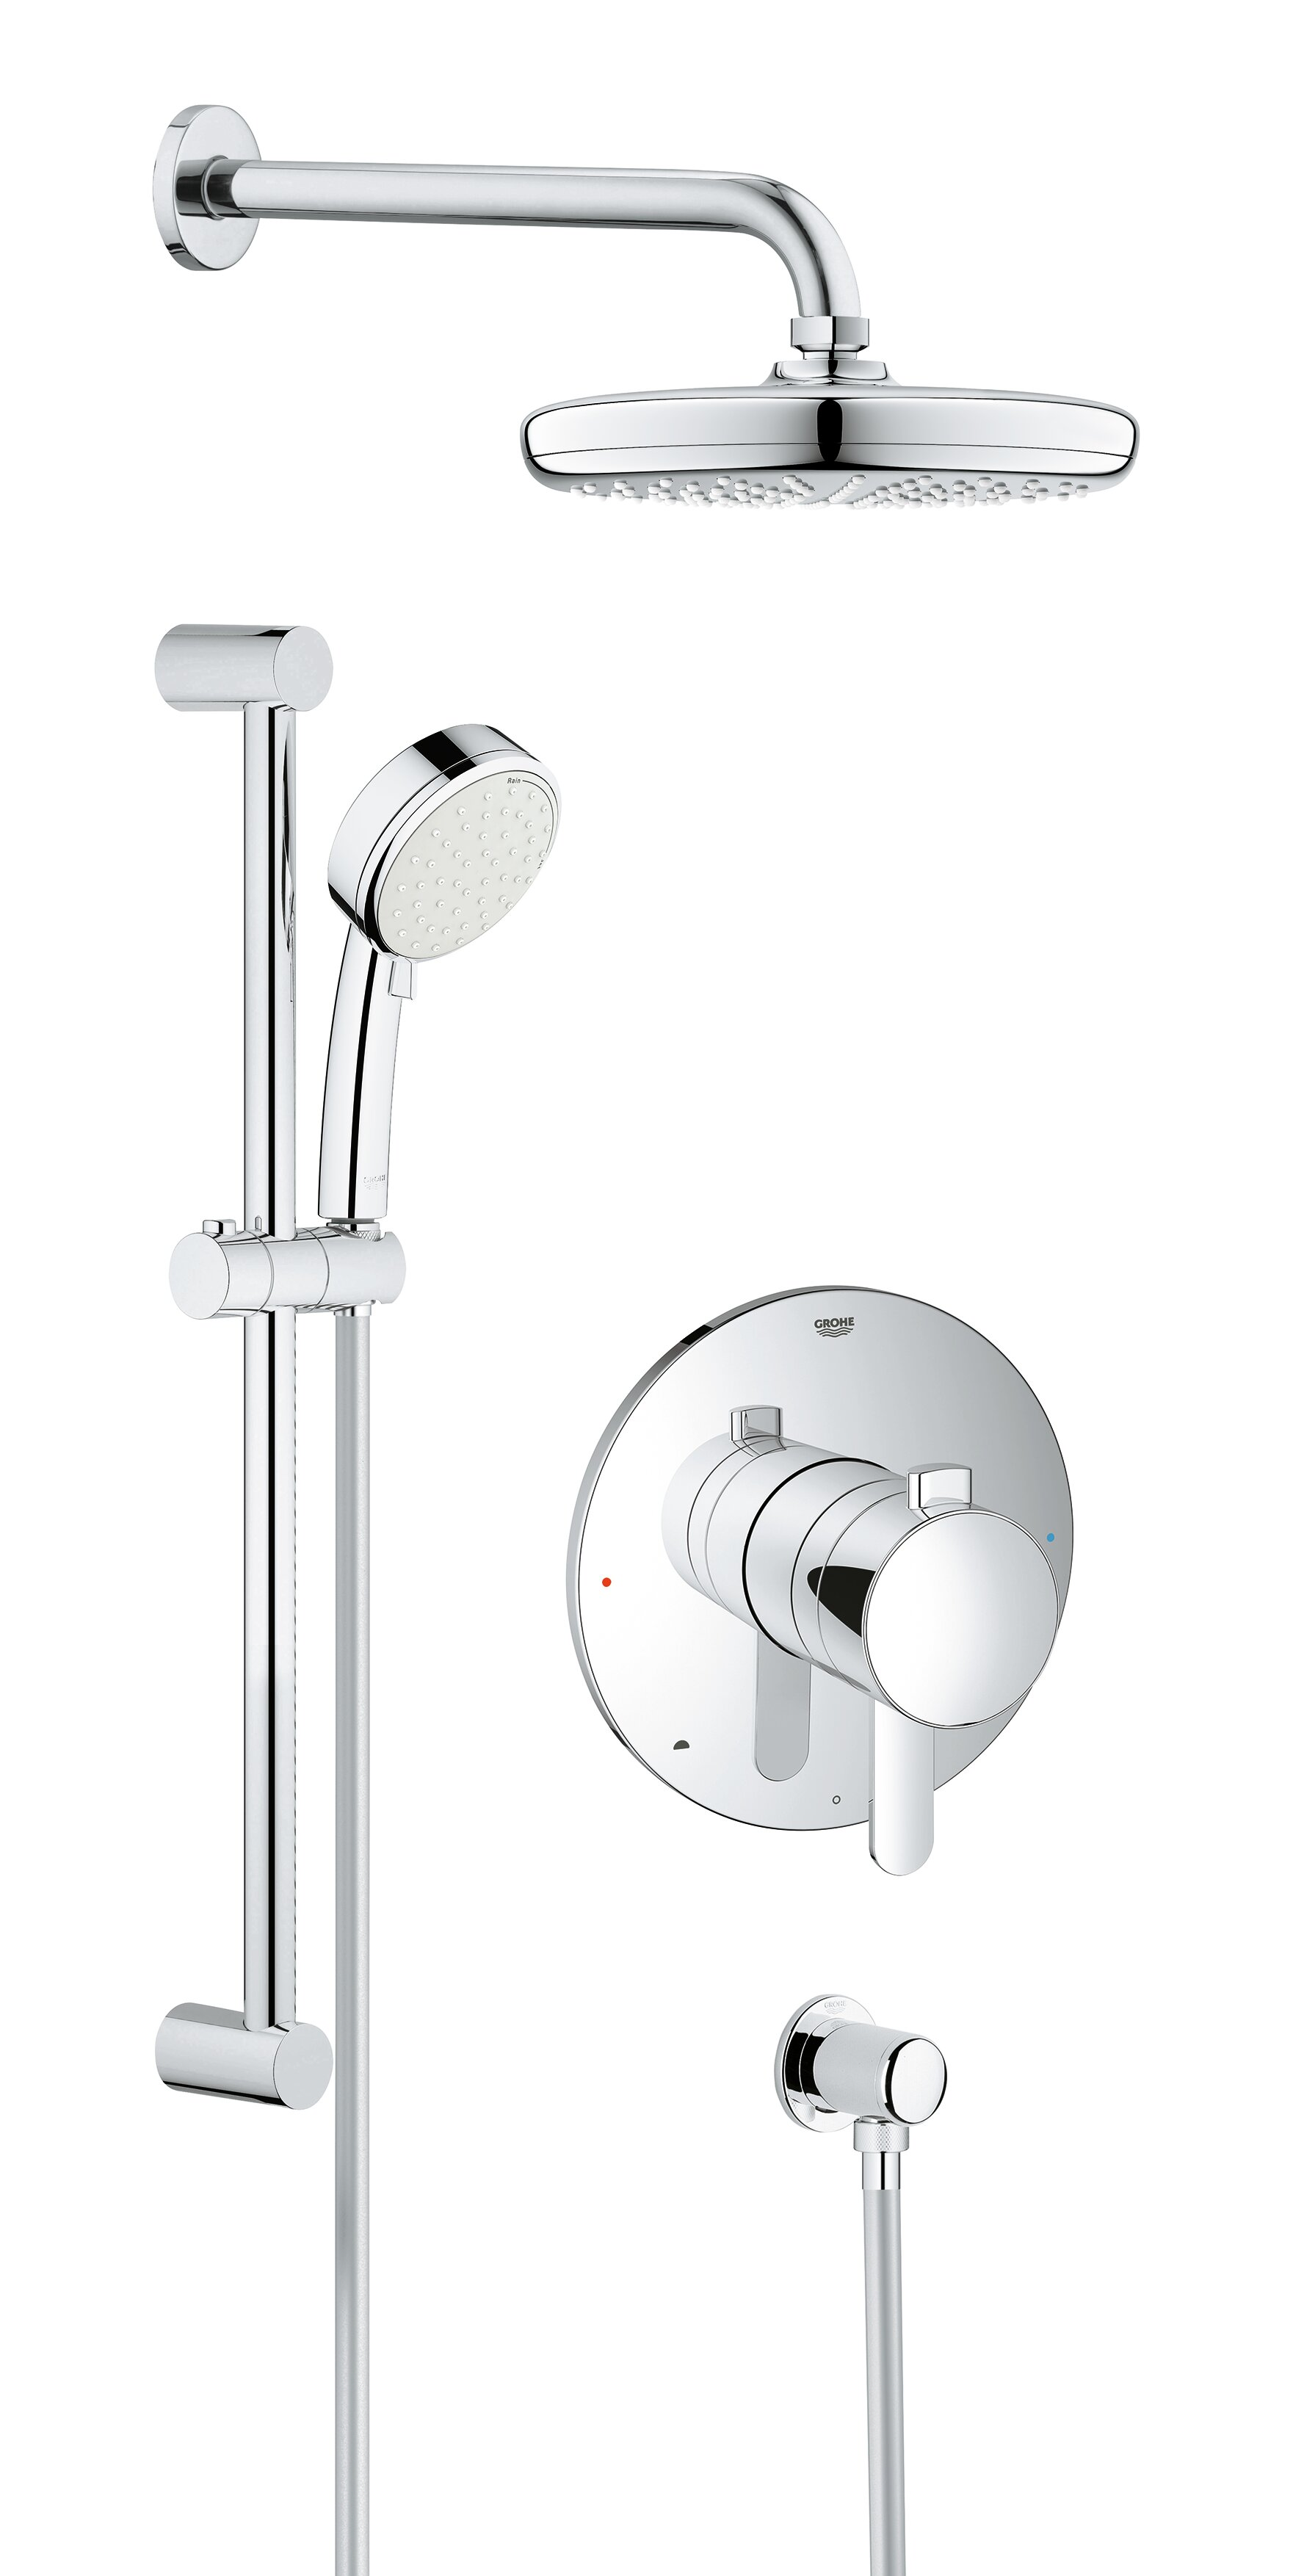 Merveilleux Grohe Cosmopolitan Pressure Balanced Dual Function Adjustable Complete  Shower System With SpeedClean Technology | Wayfair